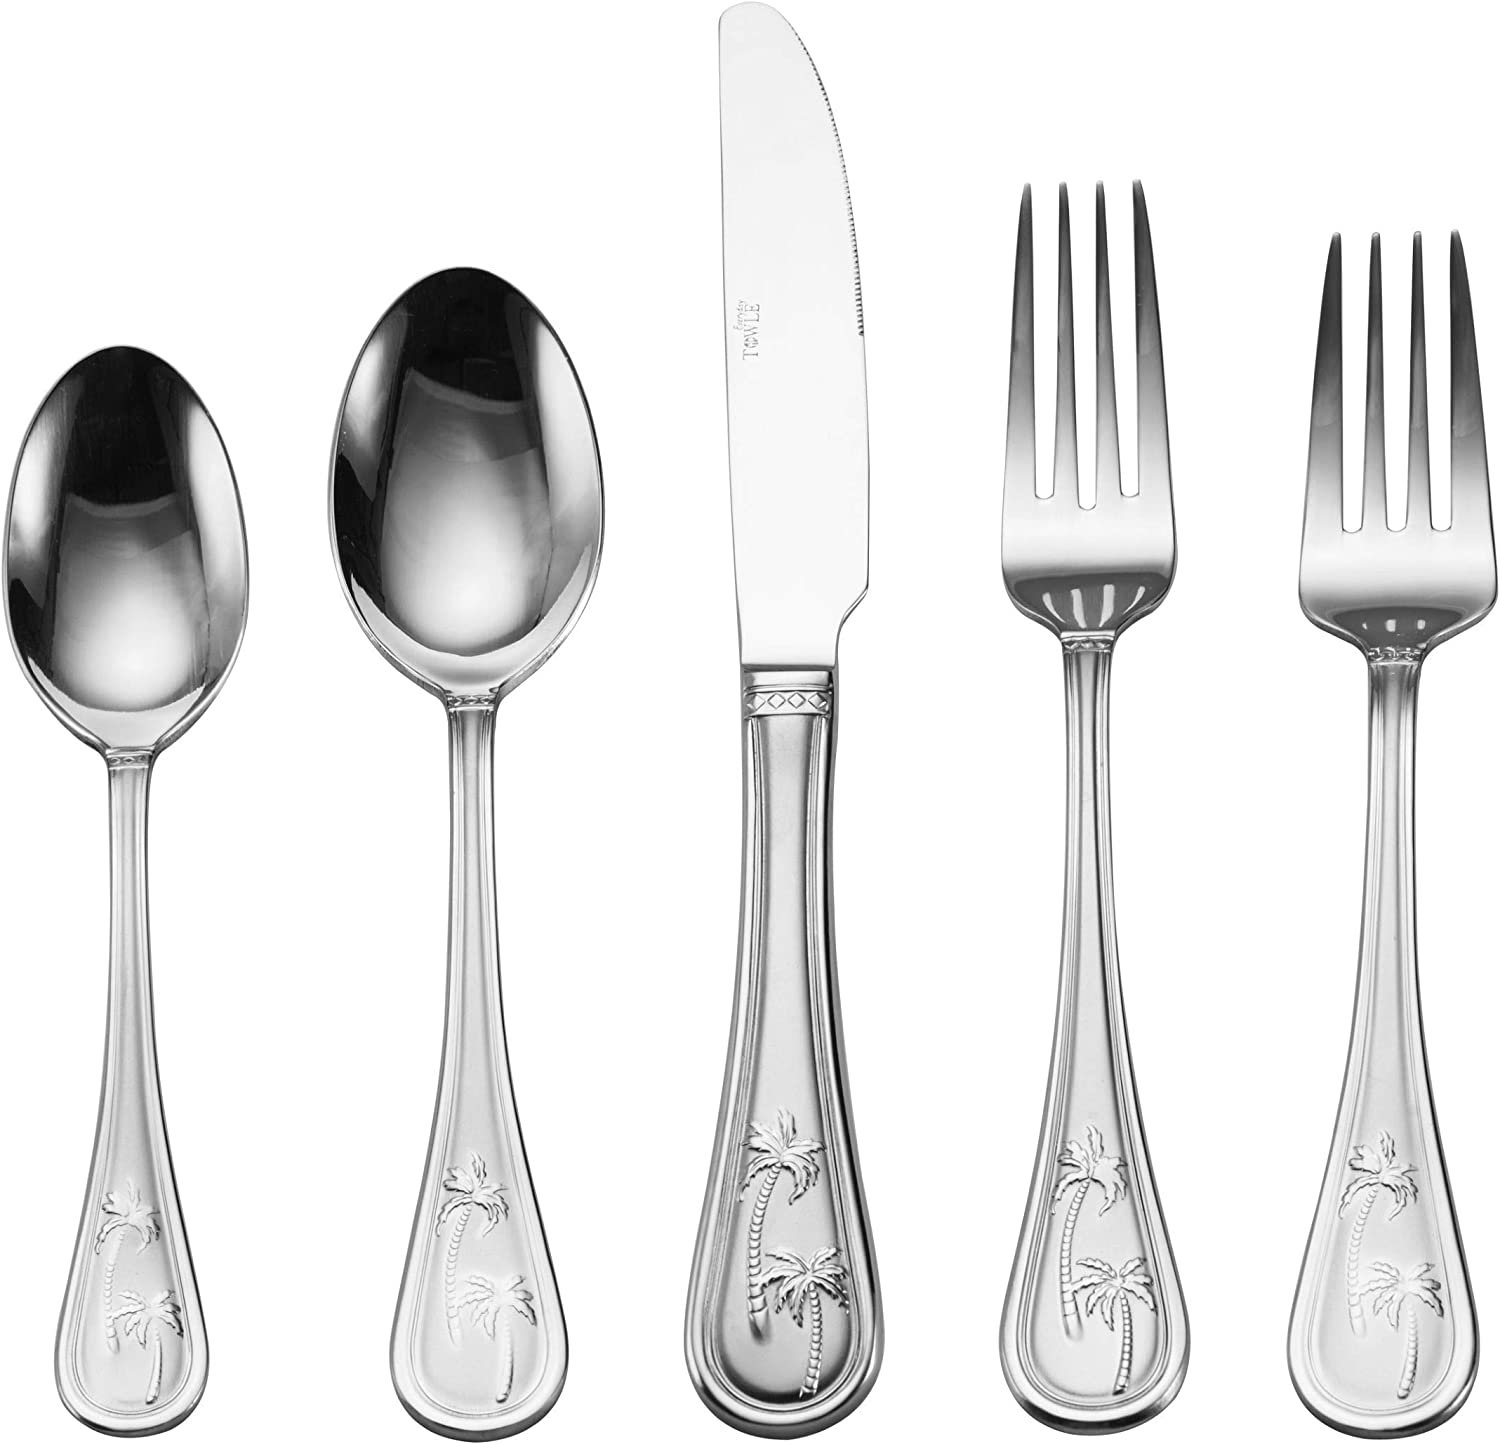 Towle Everyday 5112956 Palm Breeze 20-Piece Stainless Steel Flatware Set, Service for 4